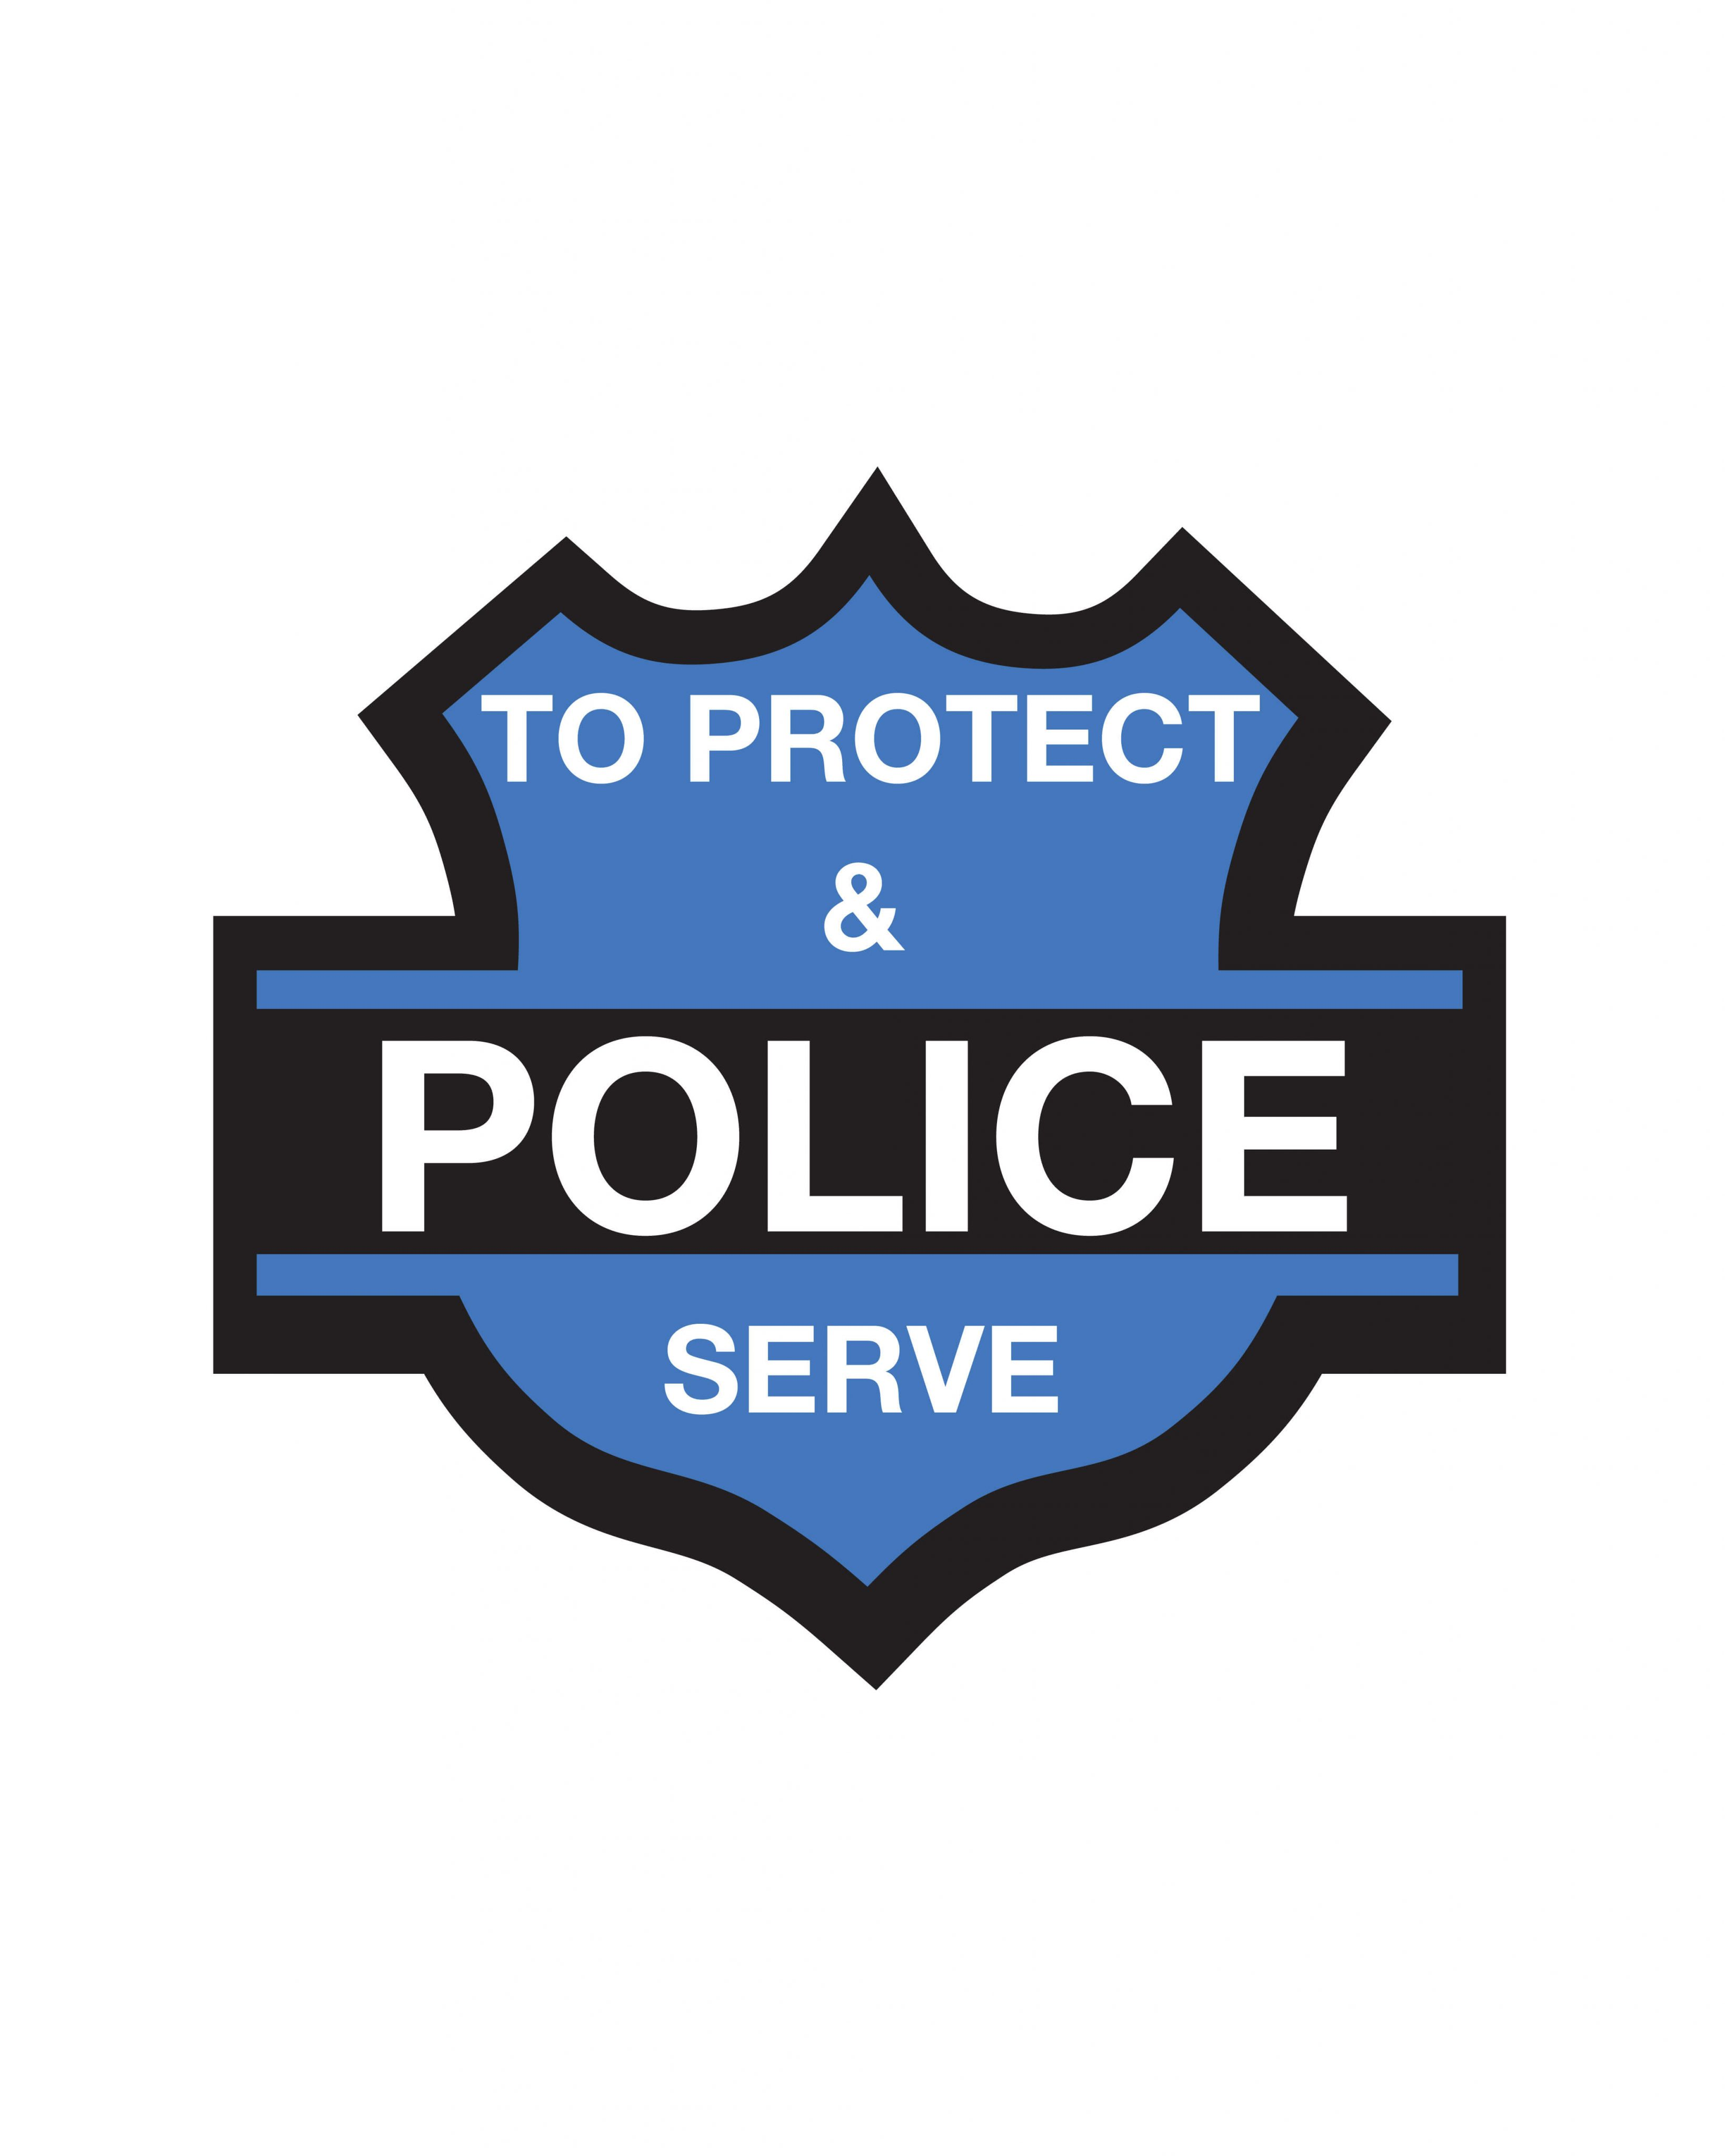 Police Sticker & Magnet | GGS Global Graphic Solutions